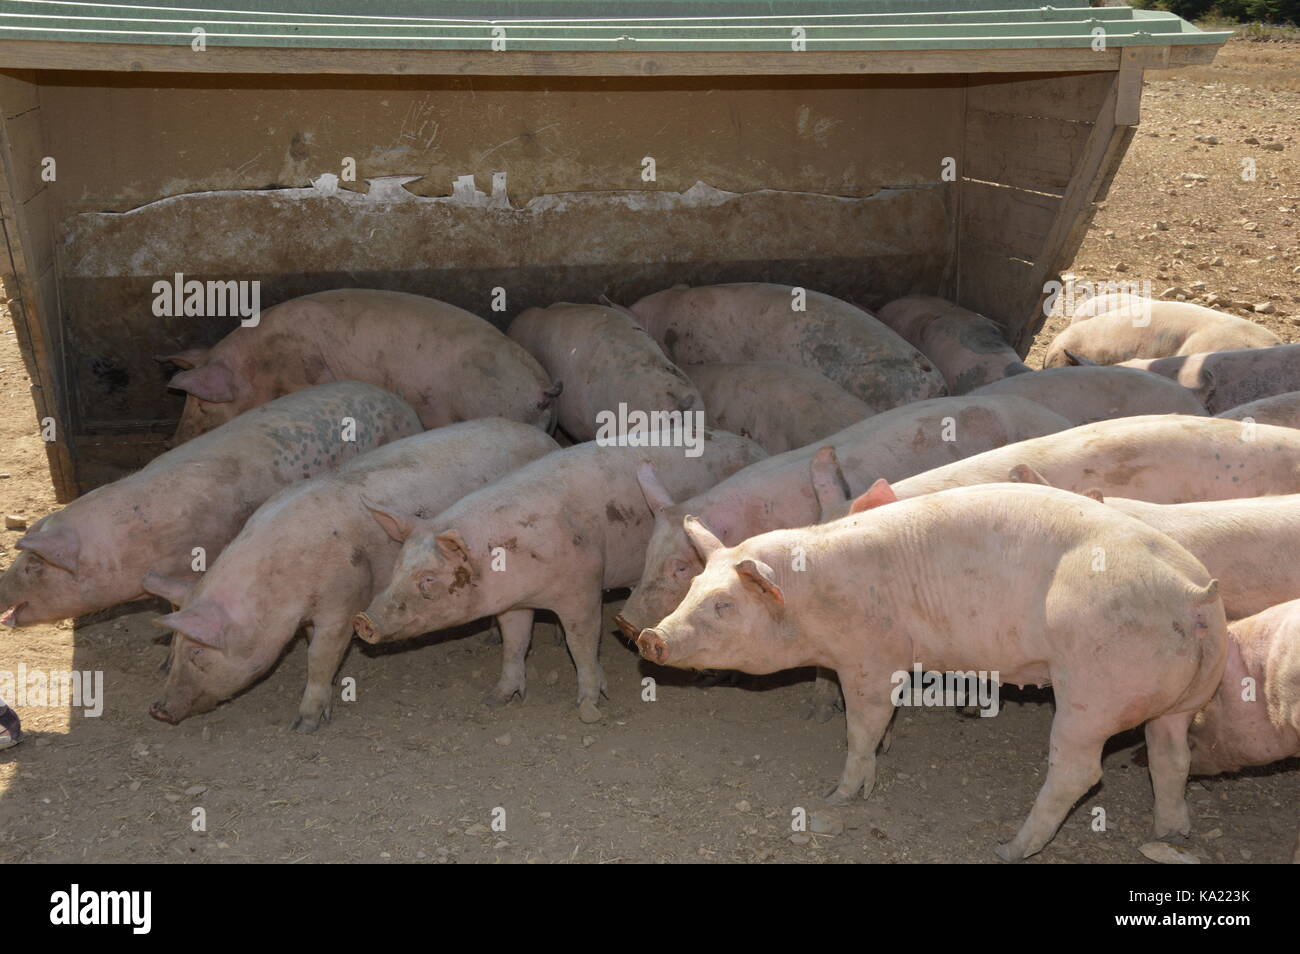 Pigs in their surroundings - Stock Image